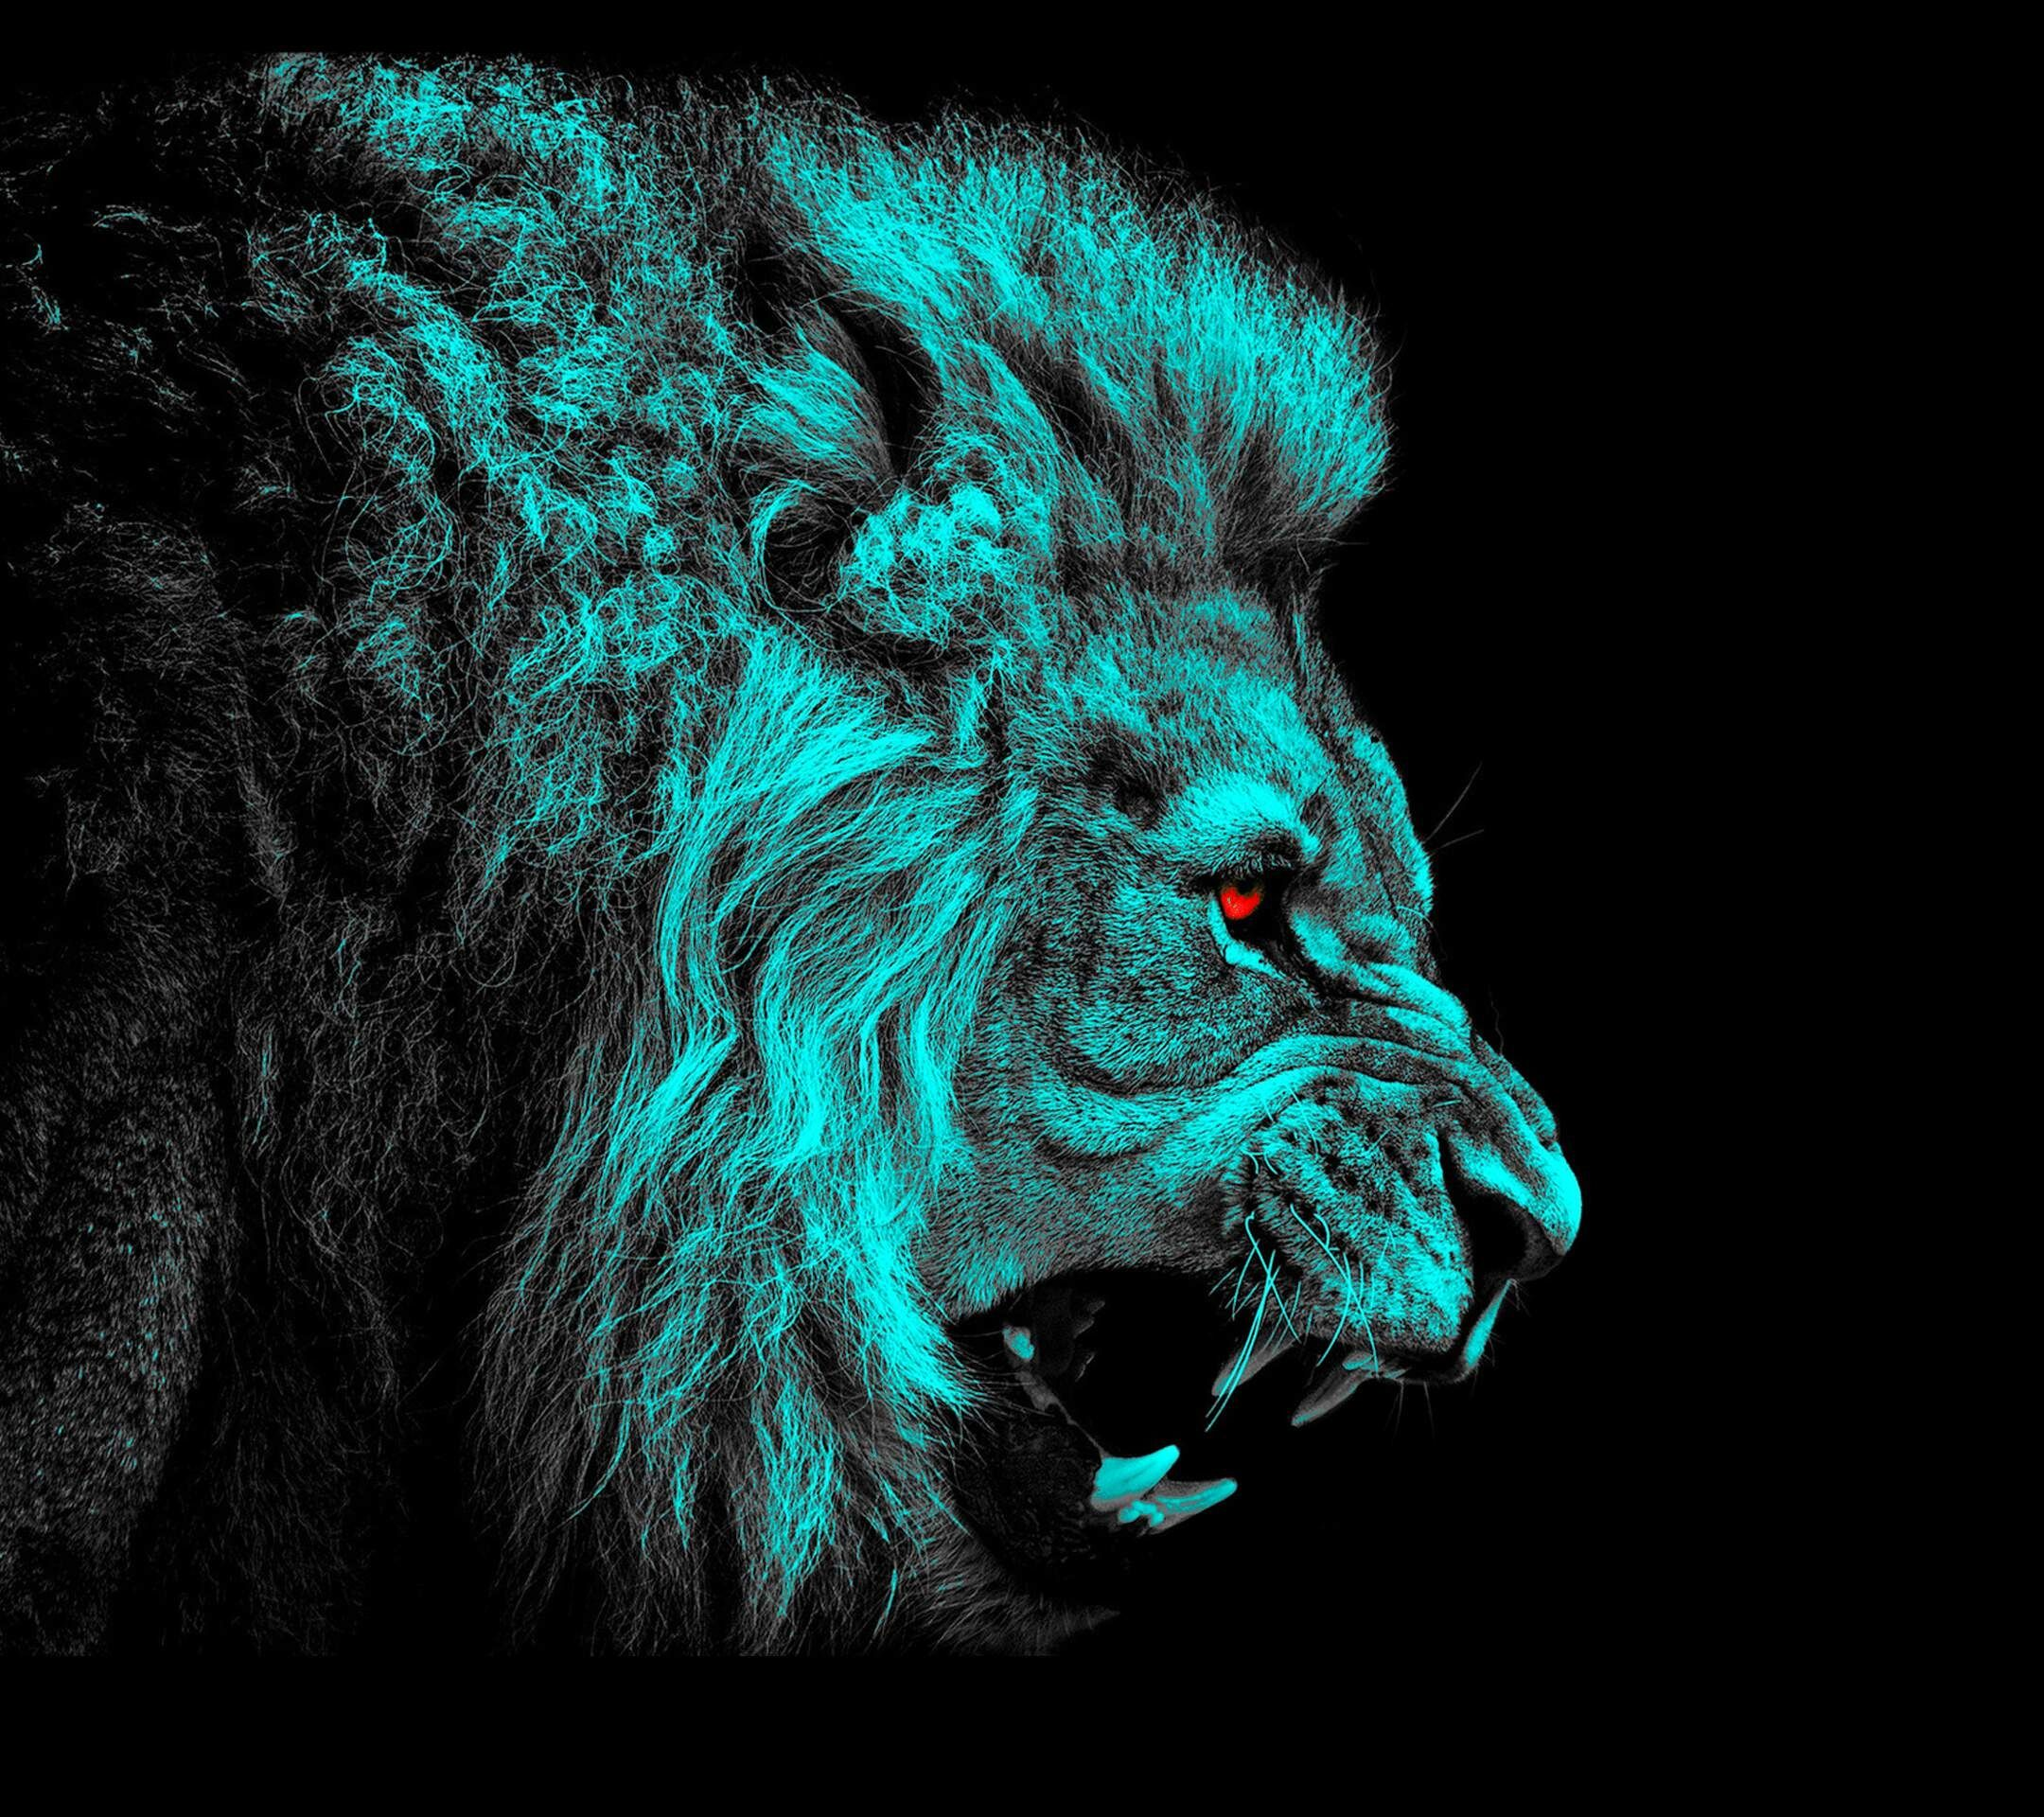 HD desktop background lion - 903 Lion Hd Wallpapers Backgrounds ... for Angry Lion Animation  174mzq